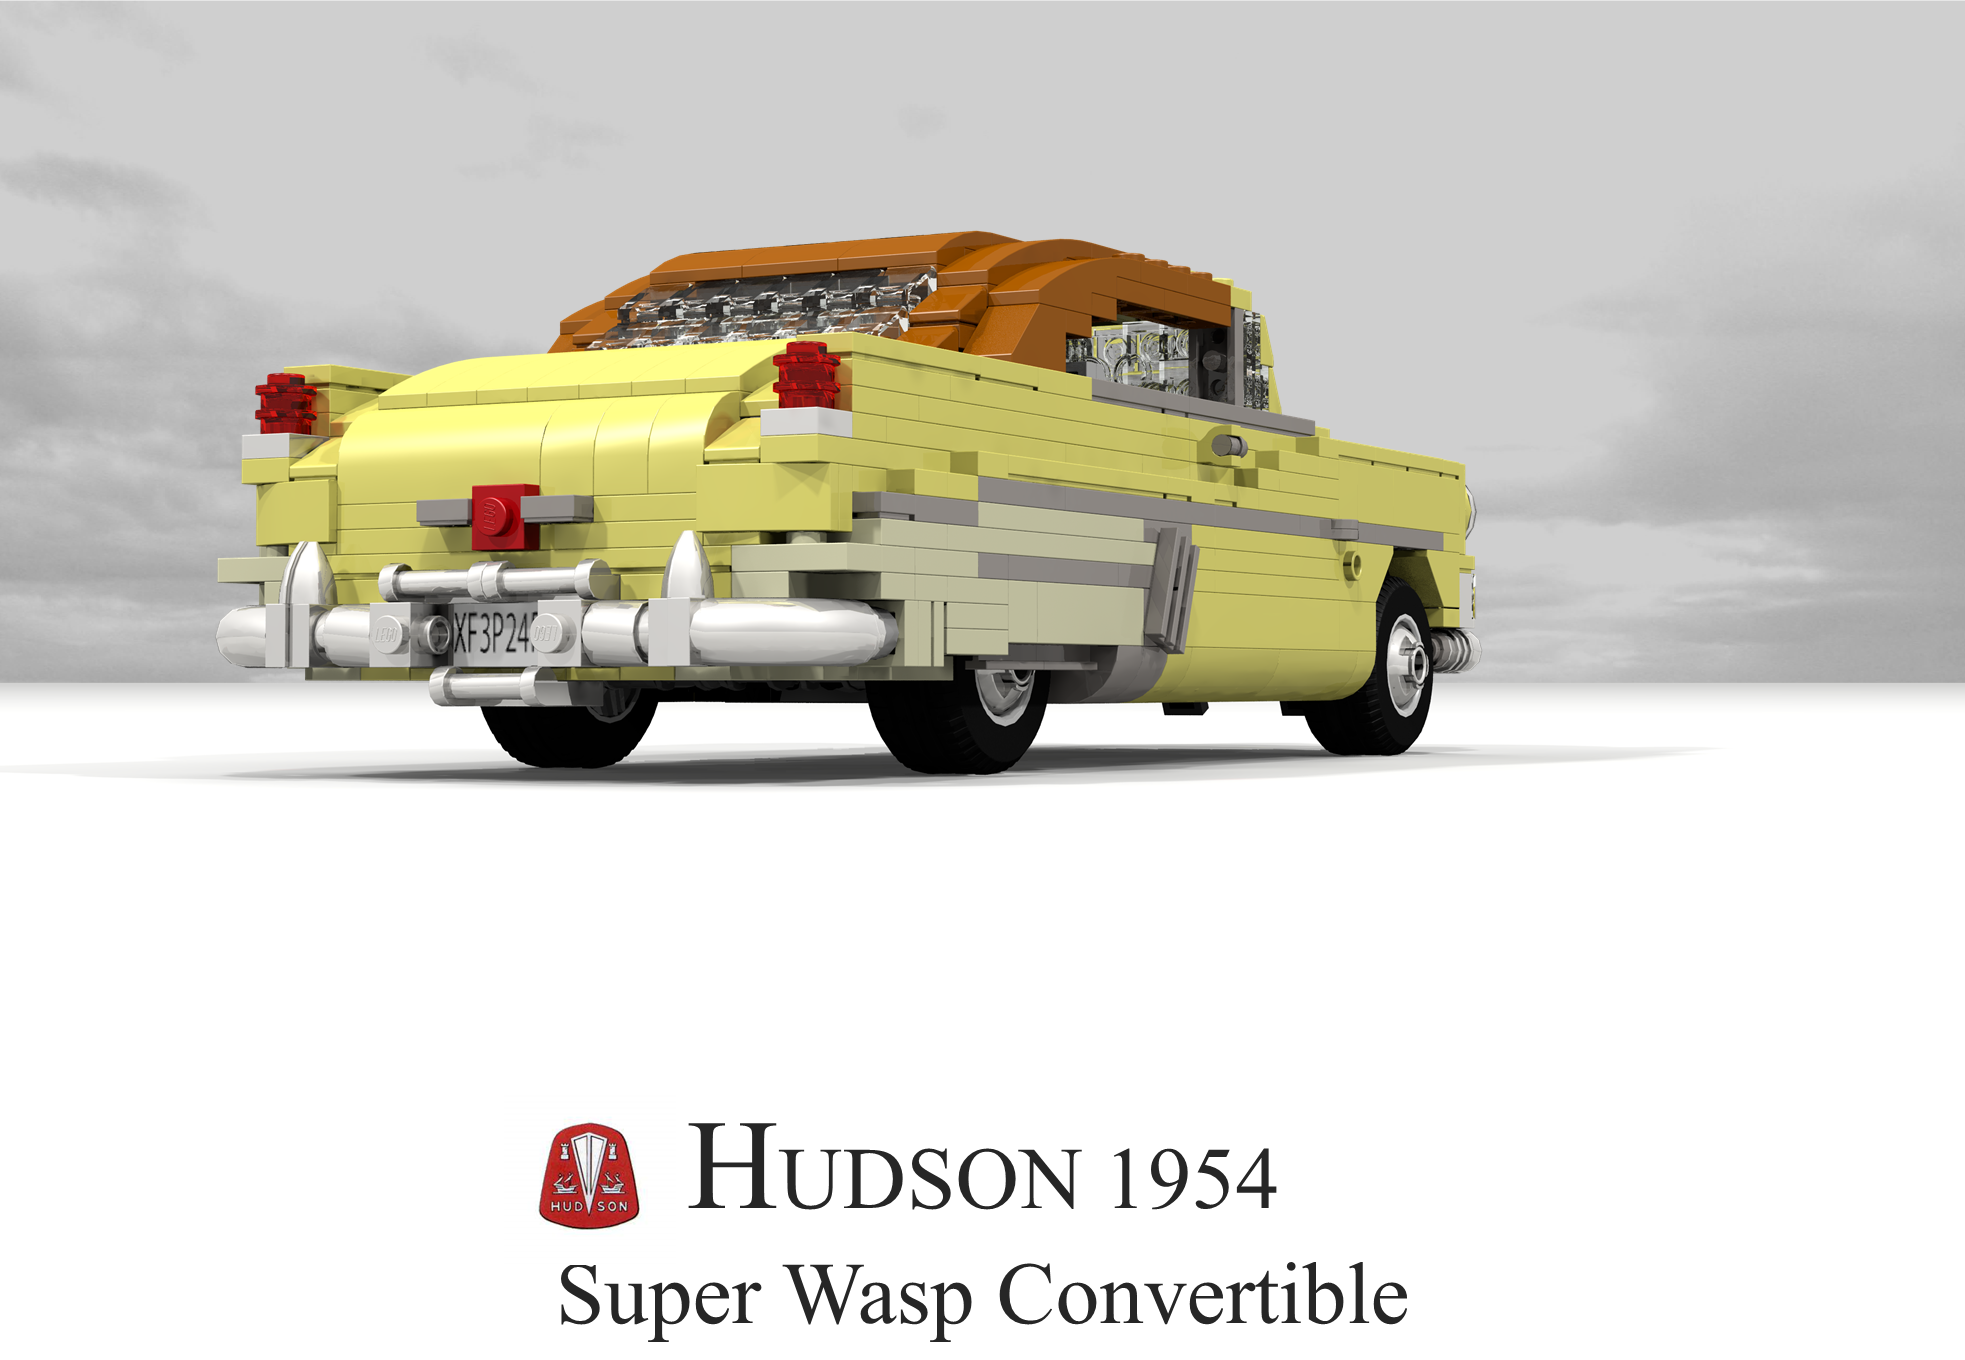 hudson_1954_super_wasp_convertible_09.png